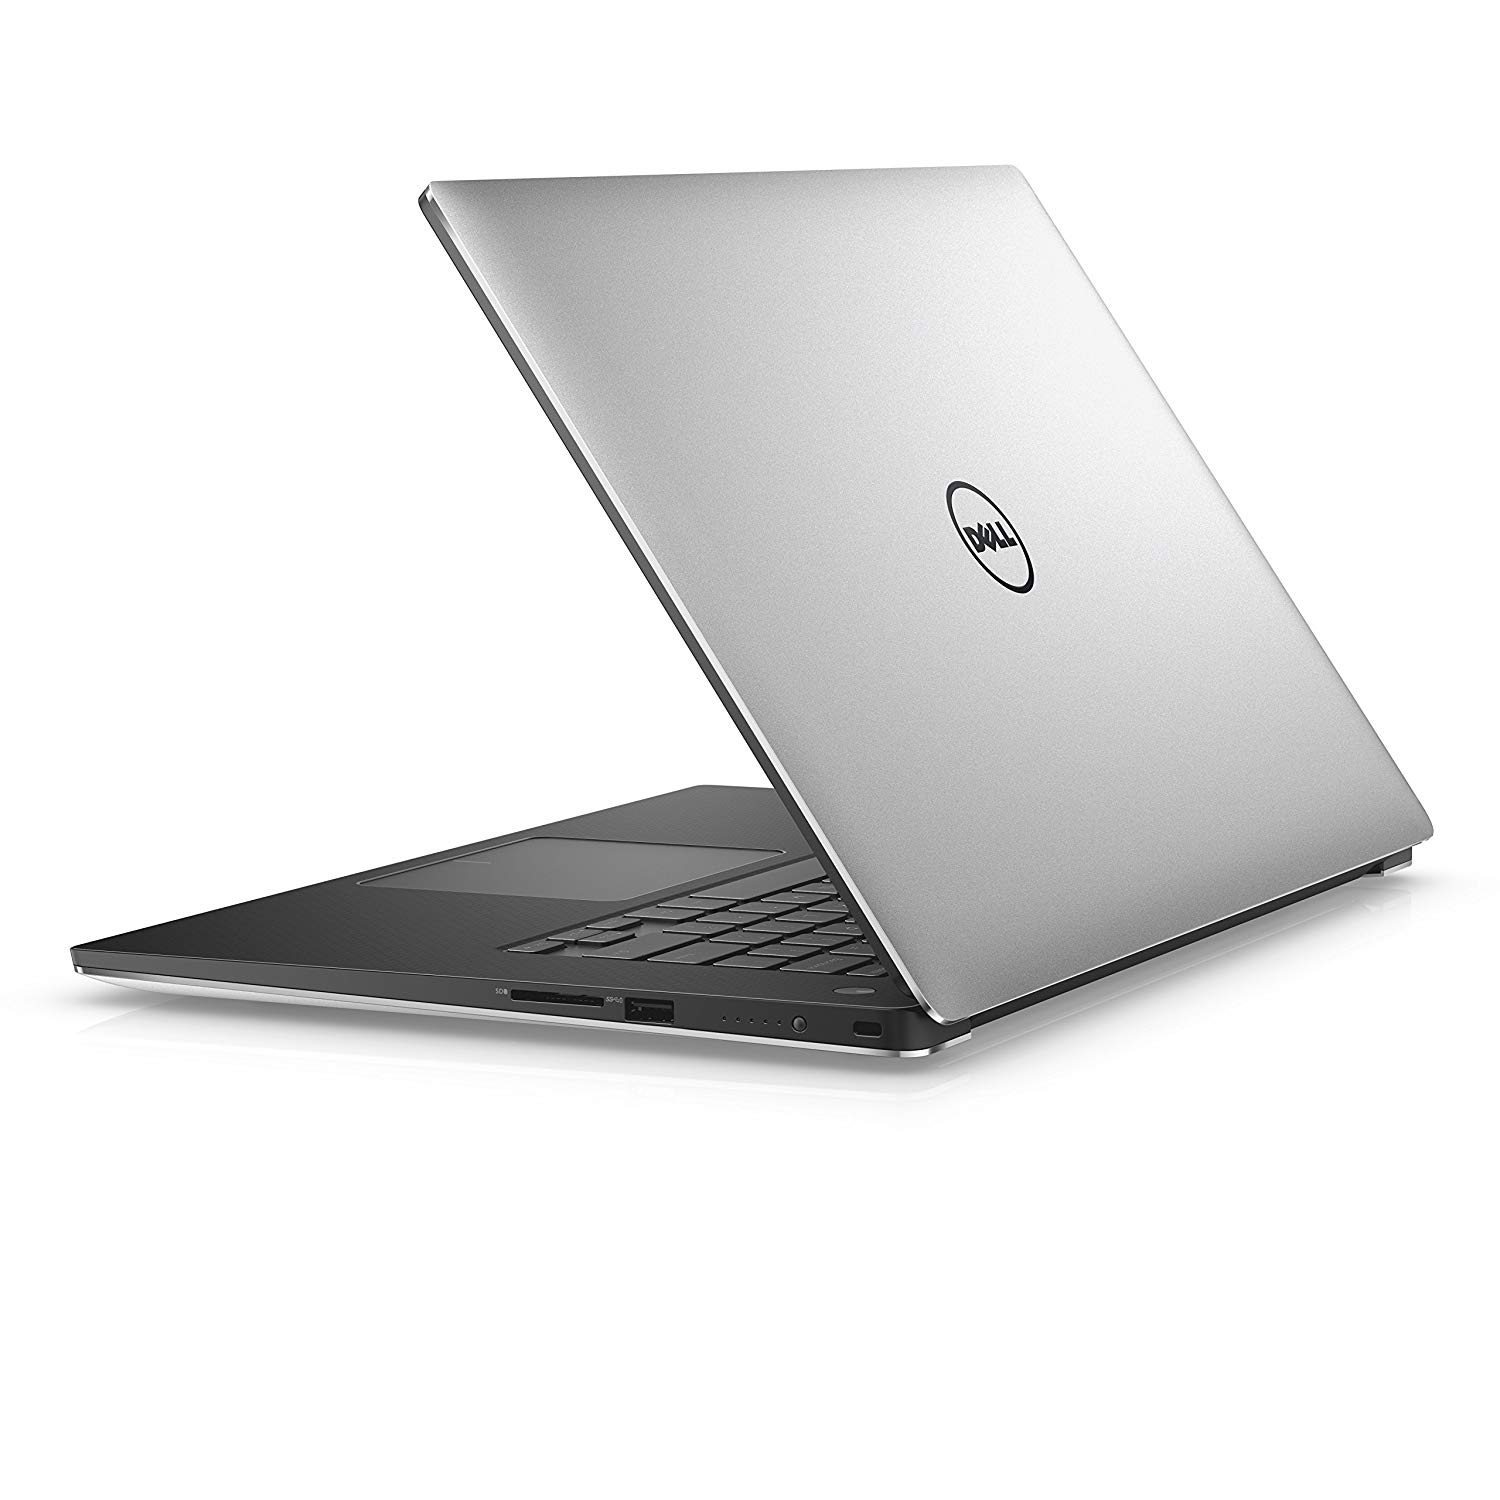 Laptop Dell Precision 5510 i7-6820HQ / 16 GB RAM/ SSD512GB/ NVIDIA Quadro M1000M/ 15.6